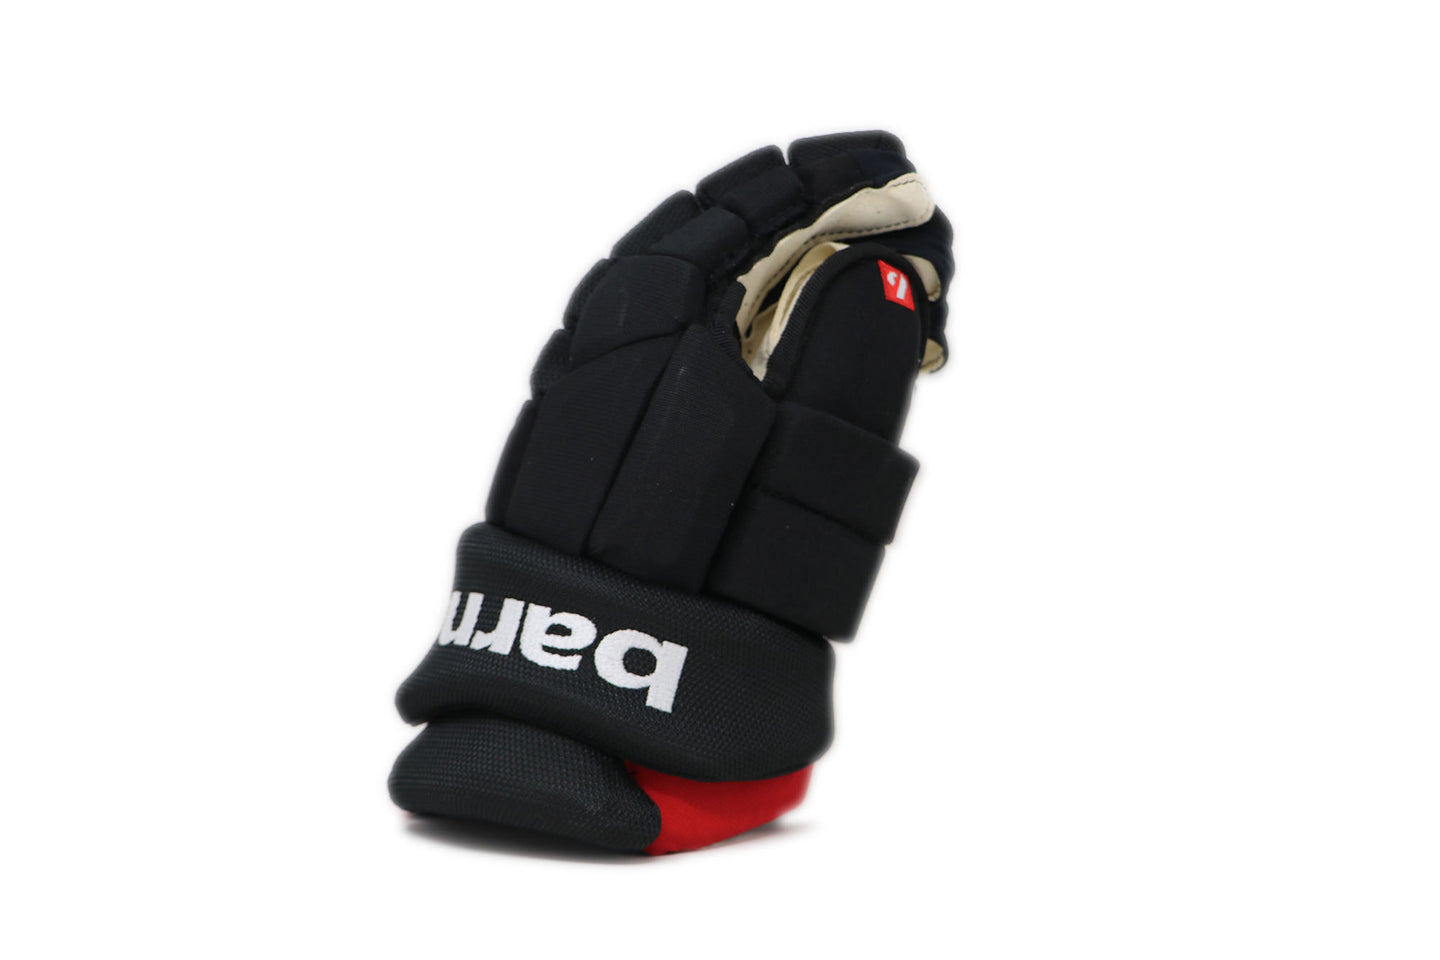 B-7 competition hockey glove